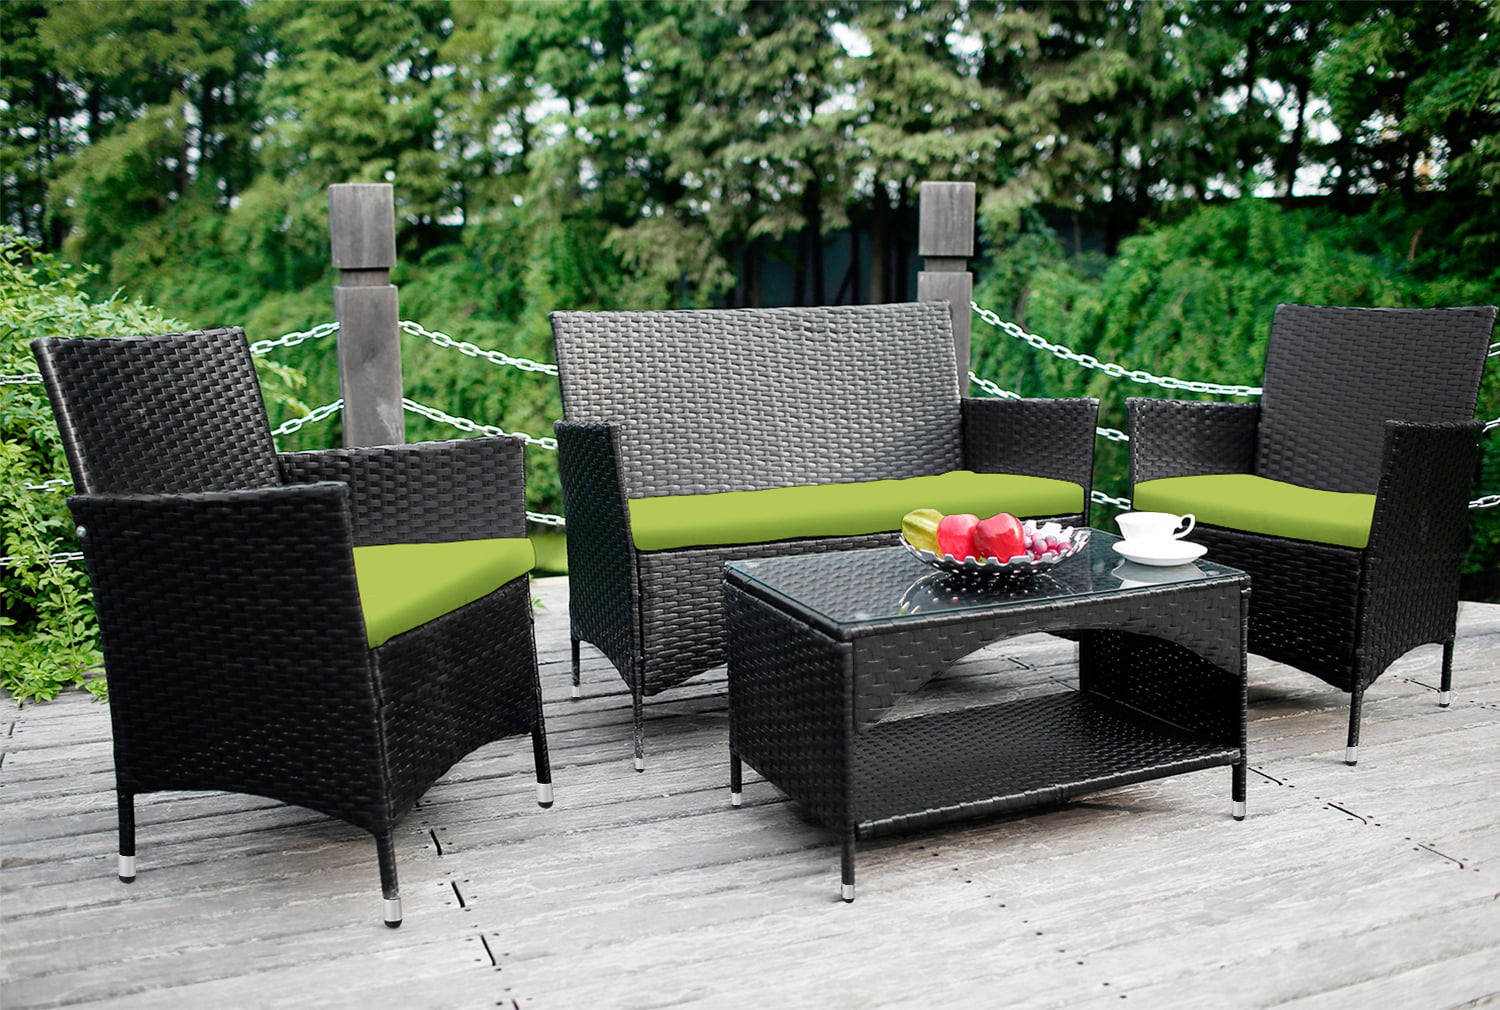 Wicker Patio Sets on Clearance, 4 Piece Outdoor Conversation Set